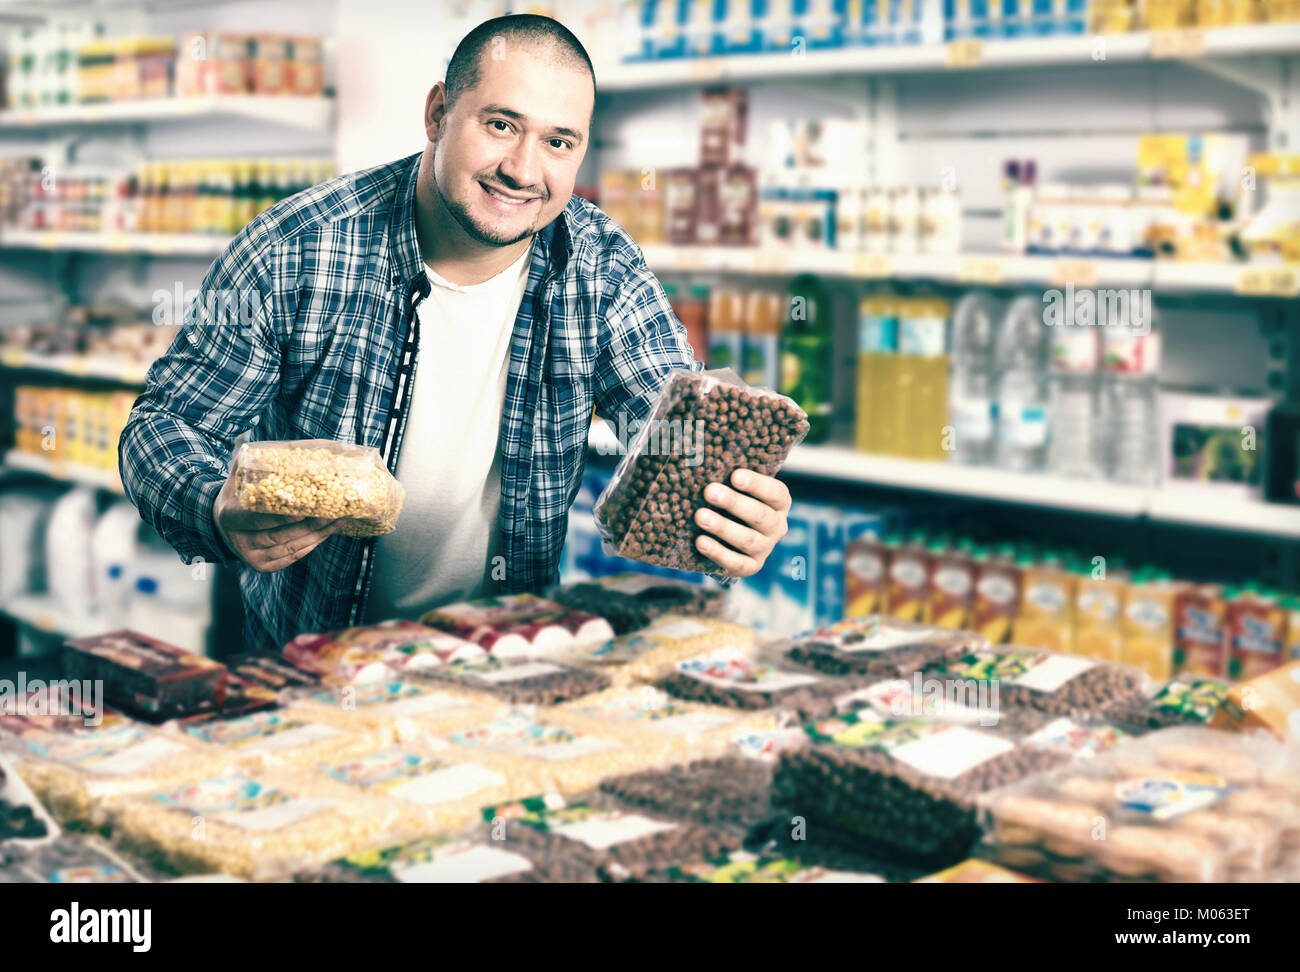 Smiling male purchaser buying kidney beans in local supermarket - Stock Image